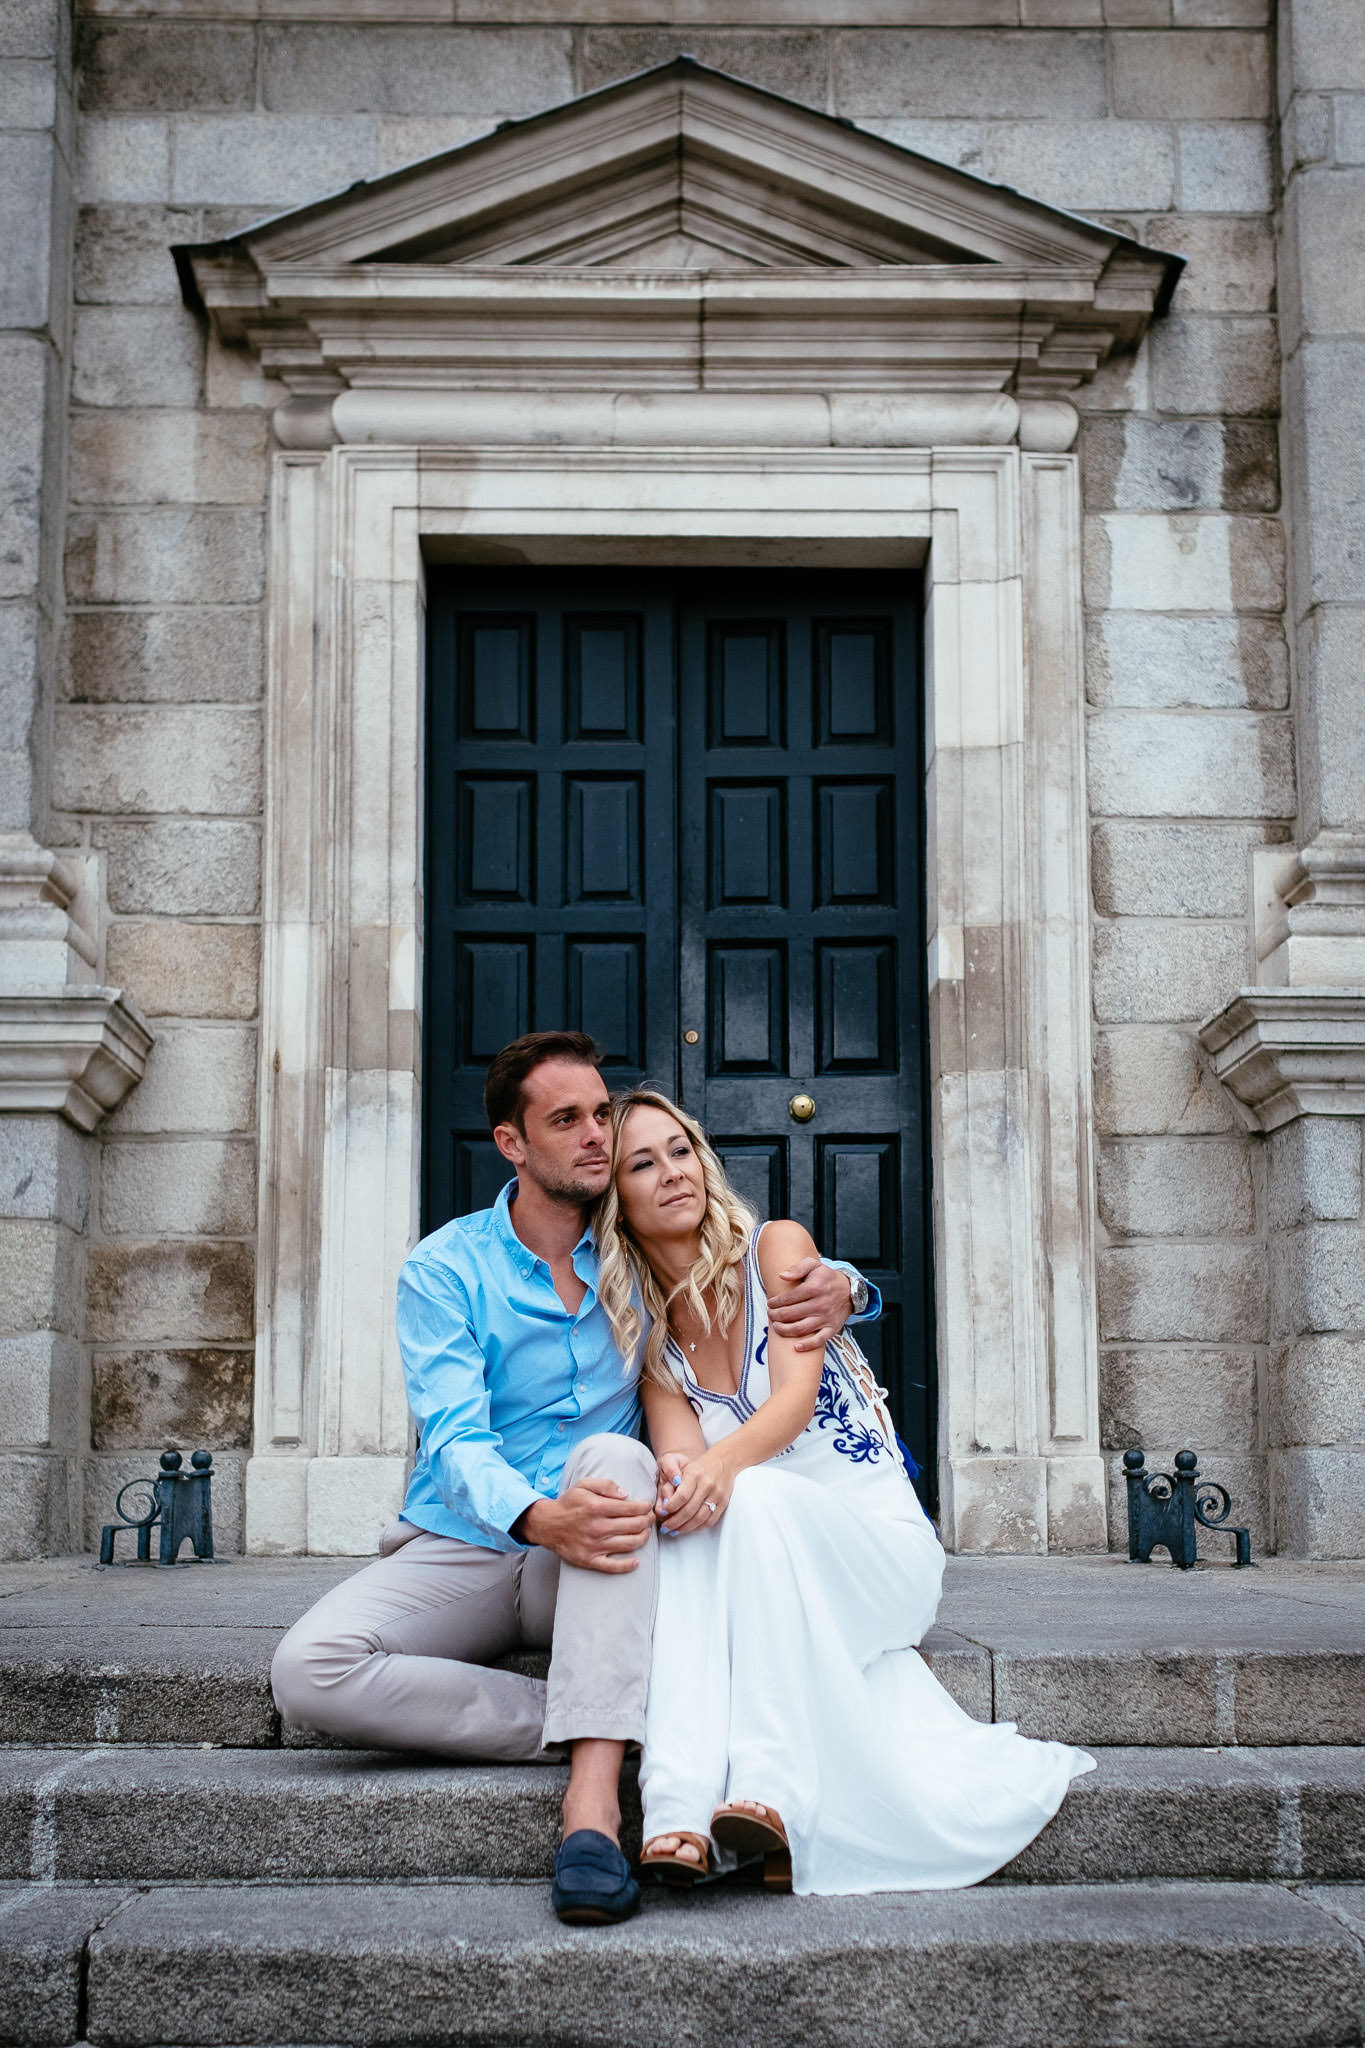 engaged guy and girl sitting by doorway during their engagement photo session in Trinity College Dublin Ireland